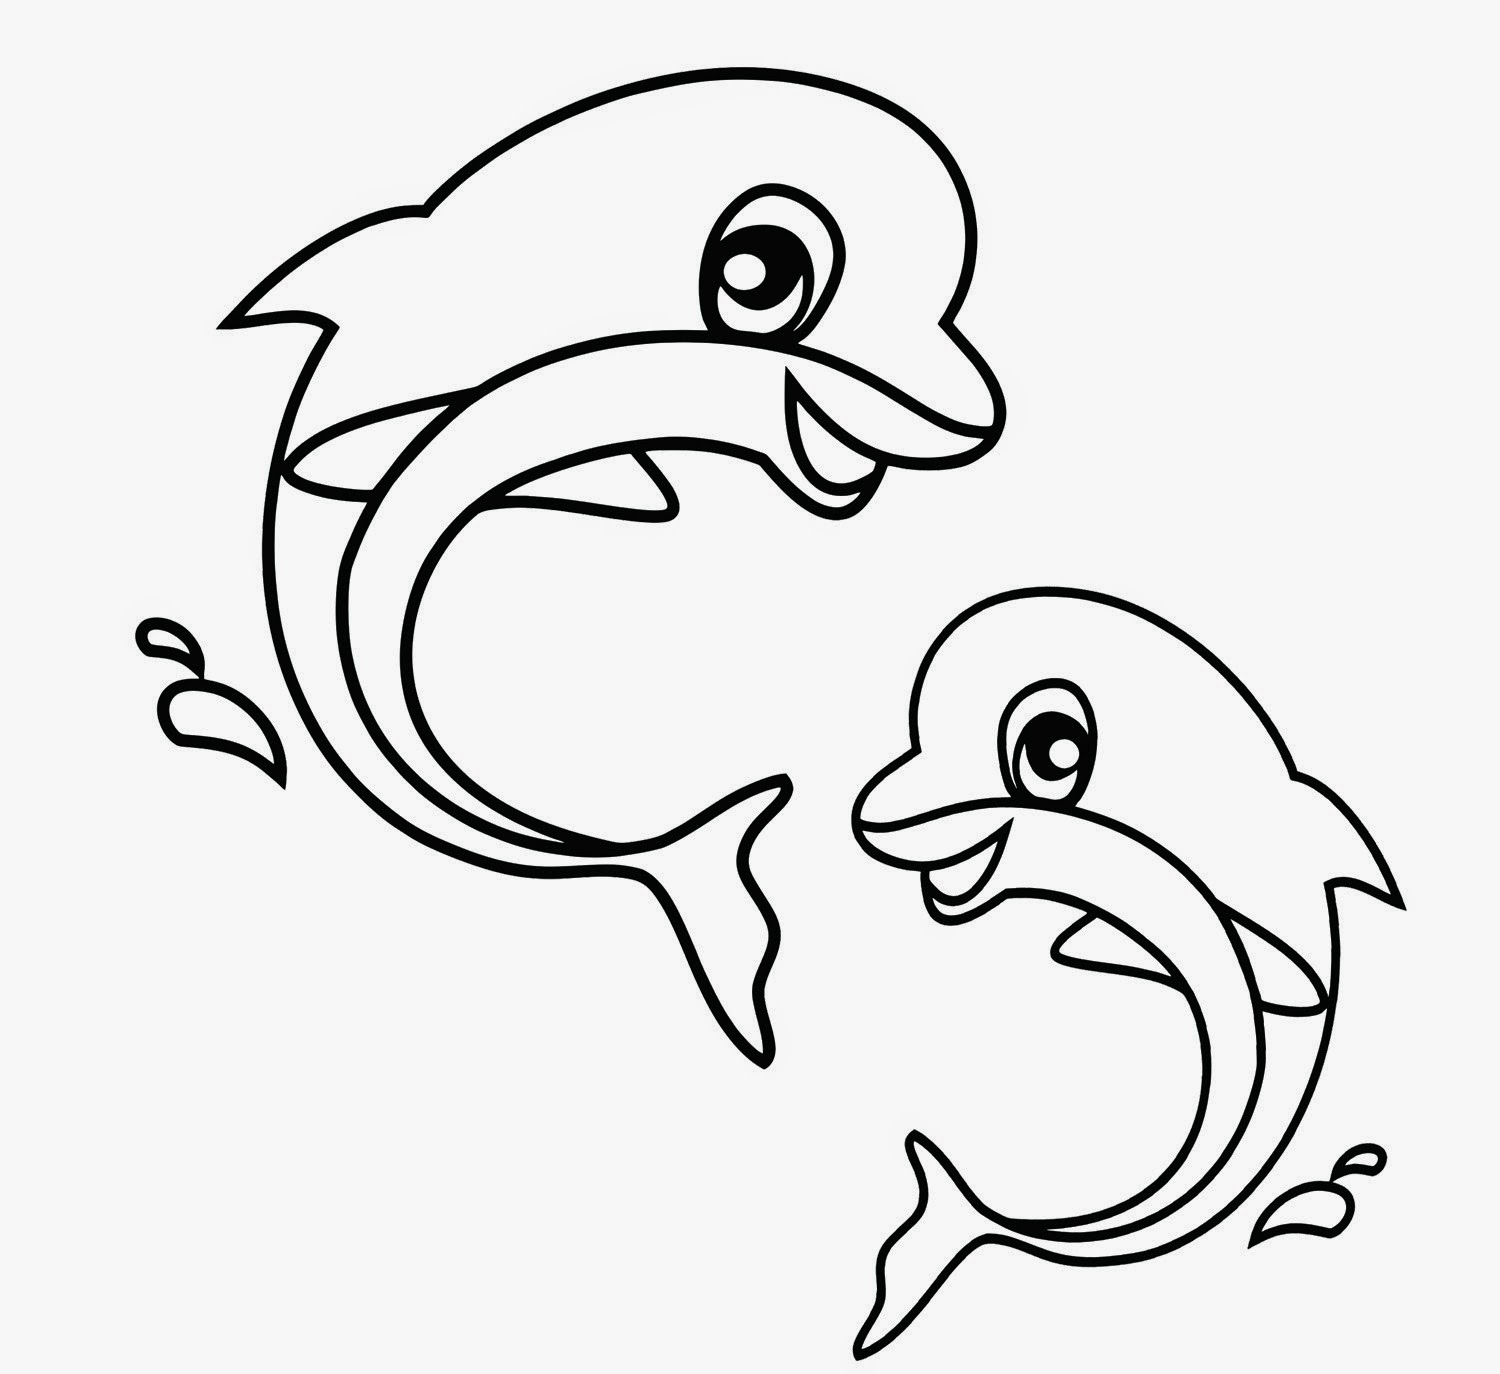 dolphin coloring pages free printable free dolphin coloring pages for kids animal place printable free dolphin pages coloring